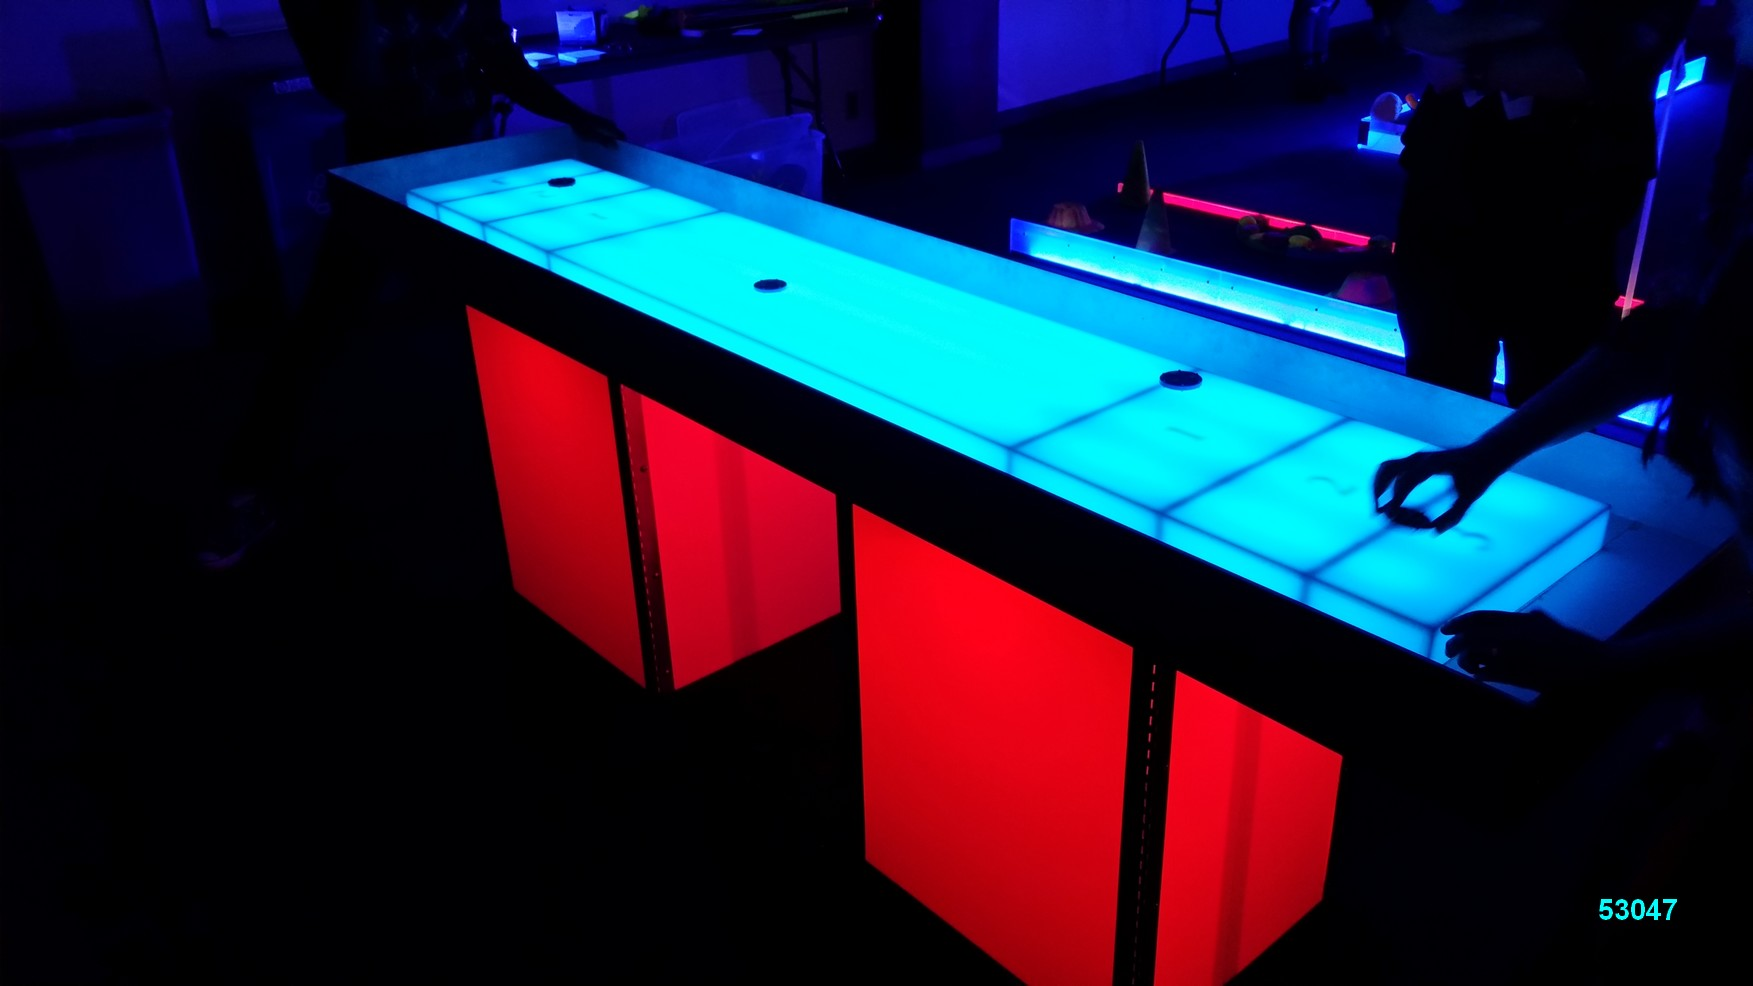 glow games shuffleboard red glow in the dark rentals 53047 Glow Games